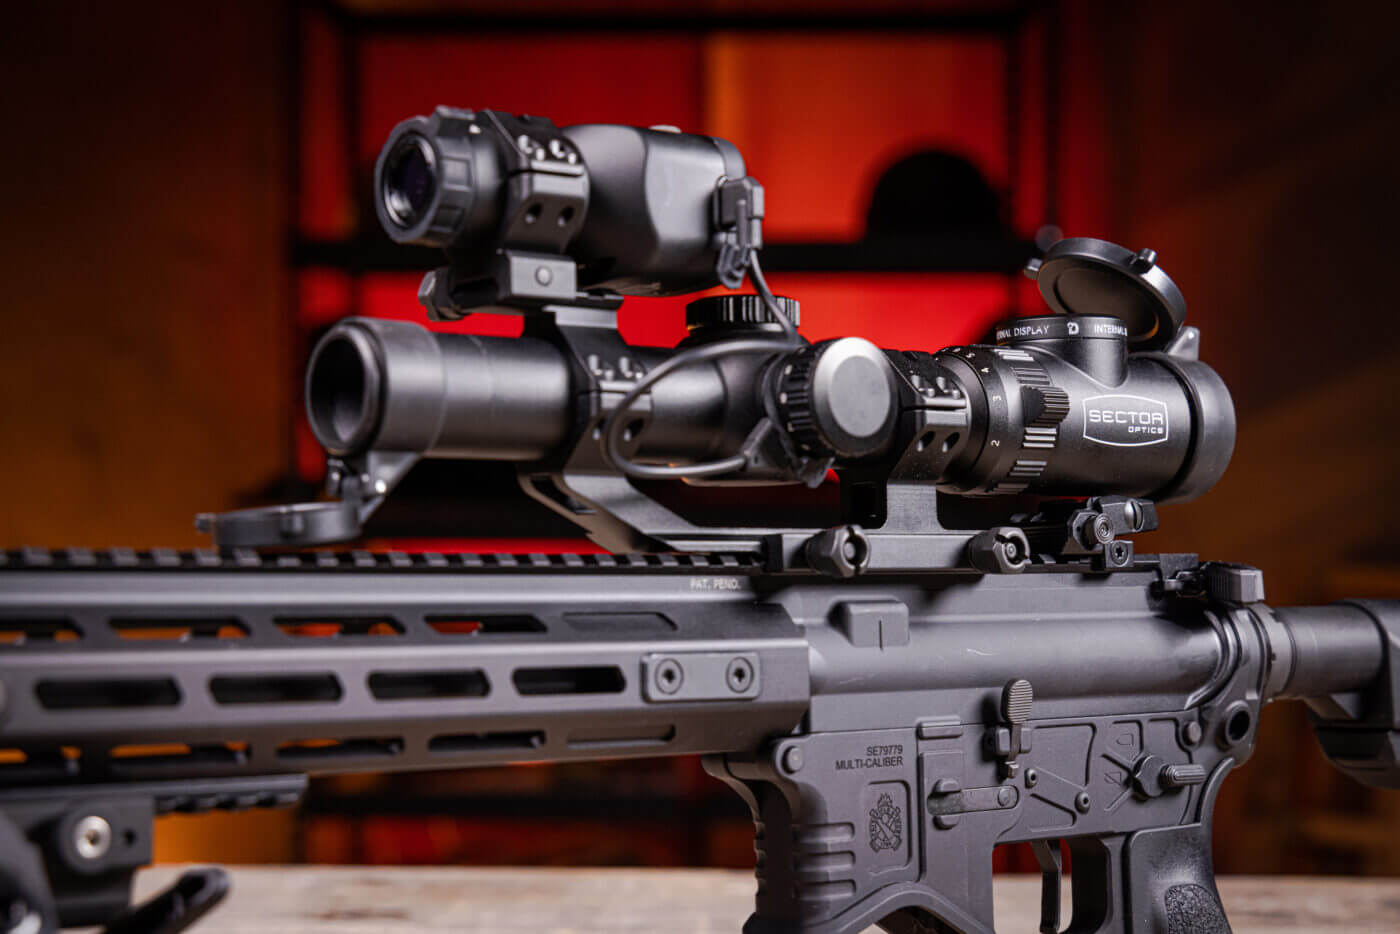 G1T3 thermal optic system